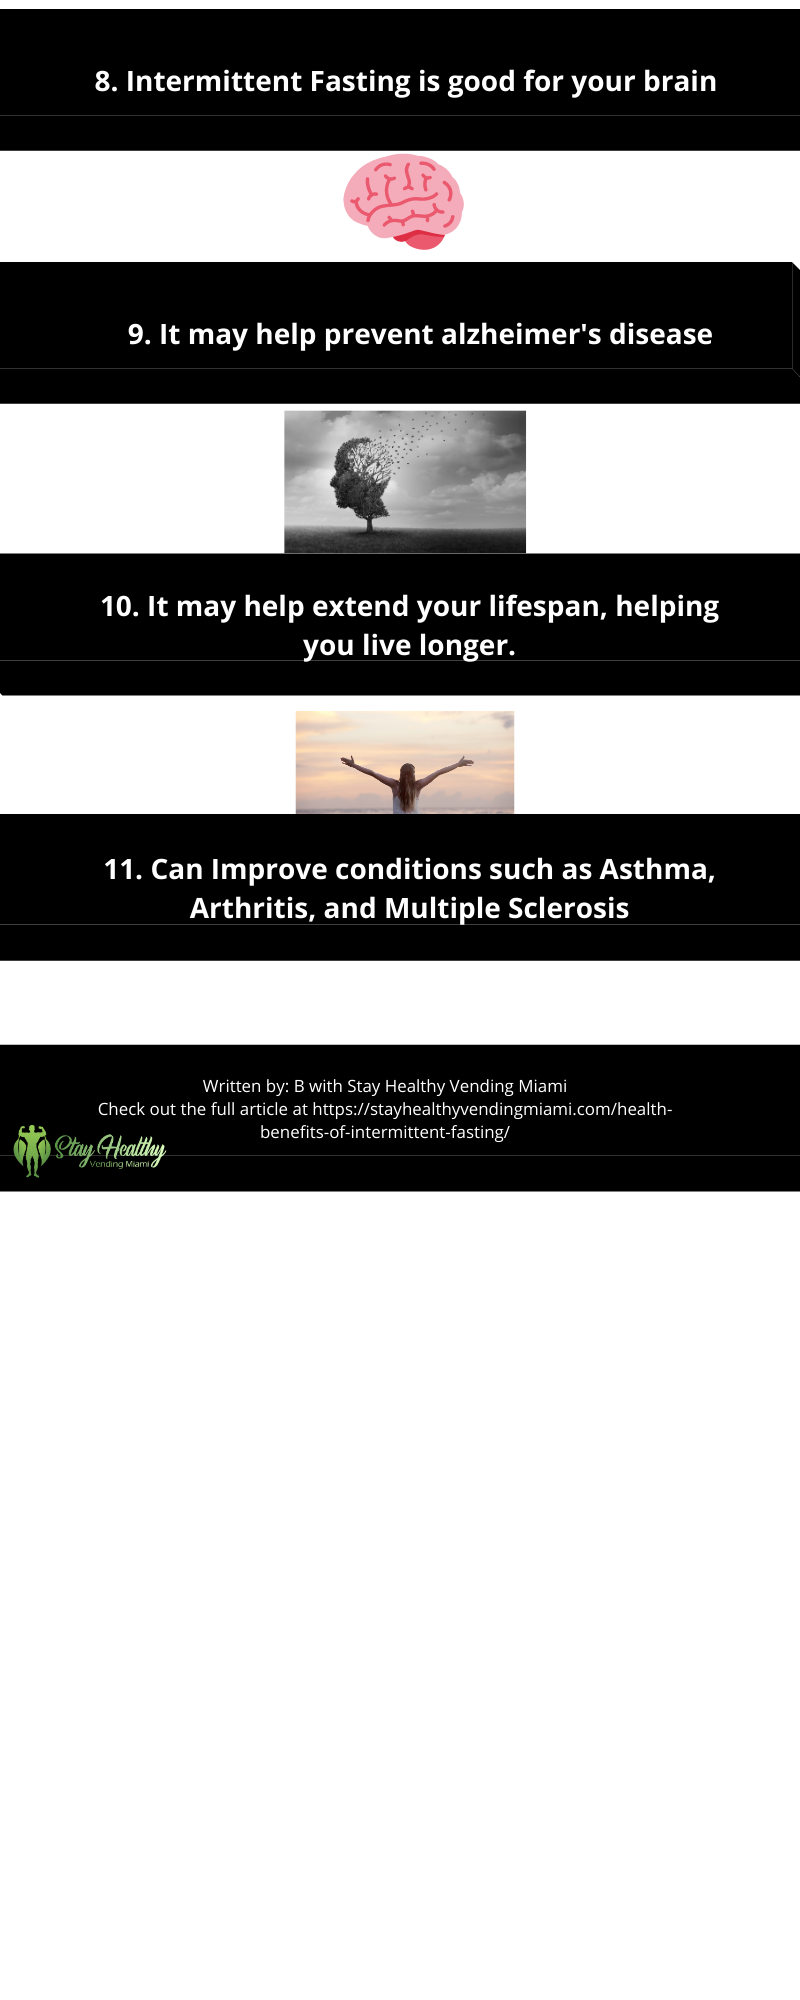 Health Benefits of Intermittent Fasting infographic. Goes over 11 points on the Health Benefits of Intermittent Fasting